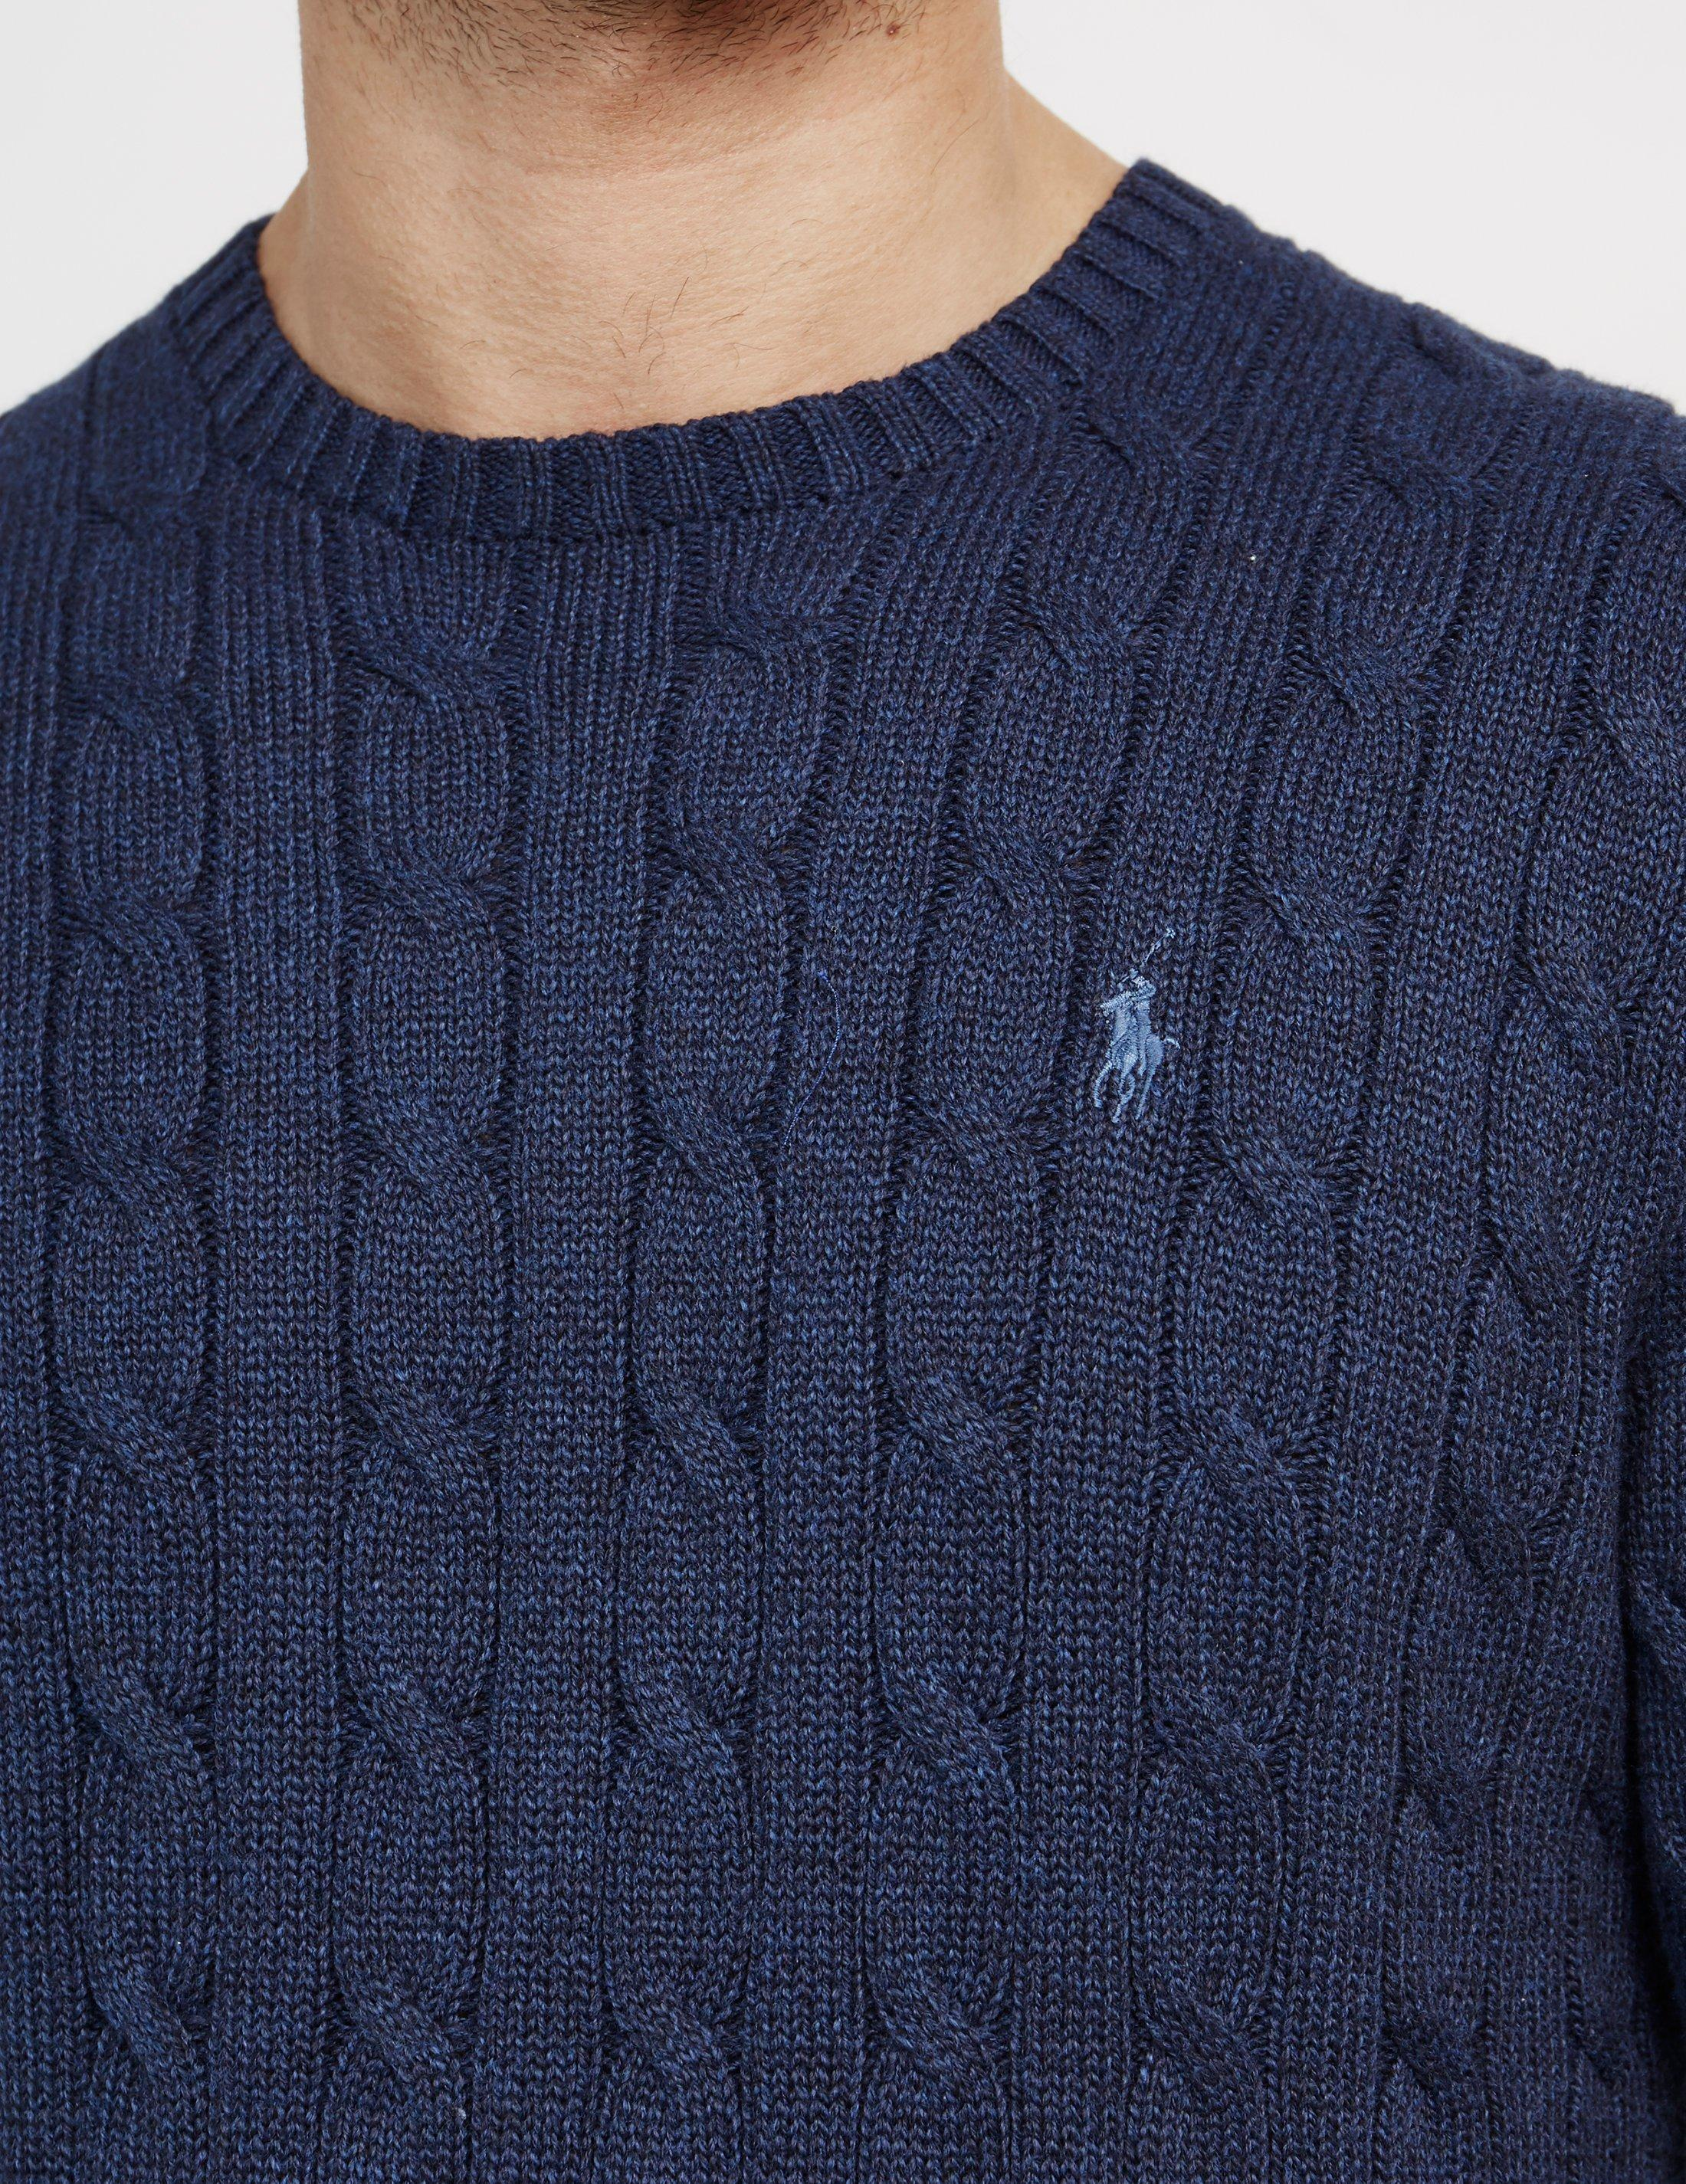 368b80123 Polo Ralph Lauren Mens Cable Knit Jumper Navy Blue in Blue for Men ...